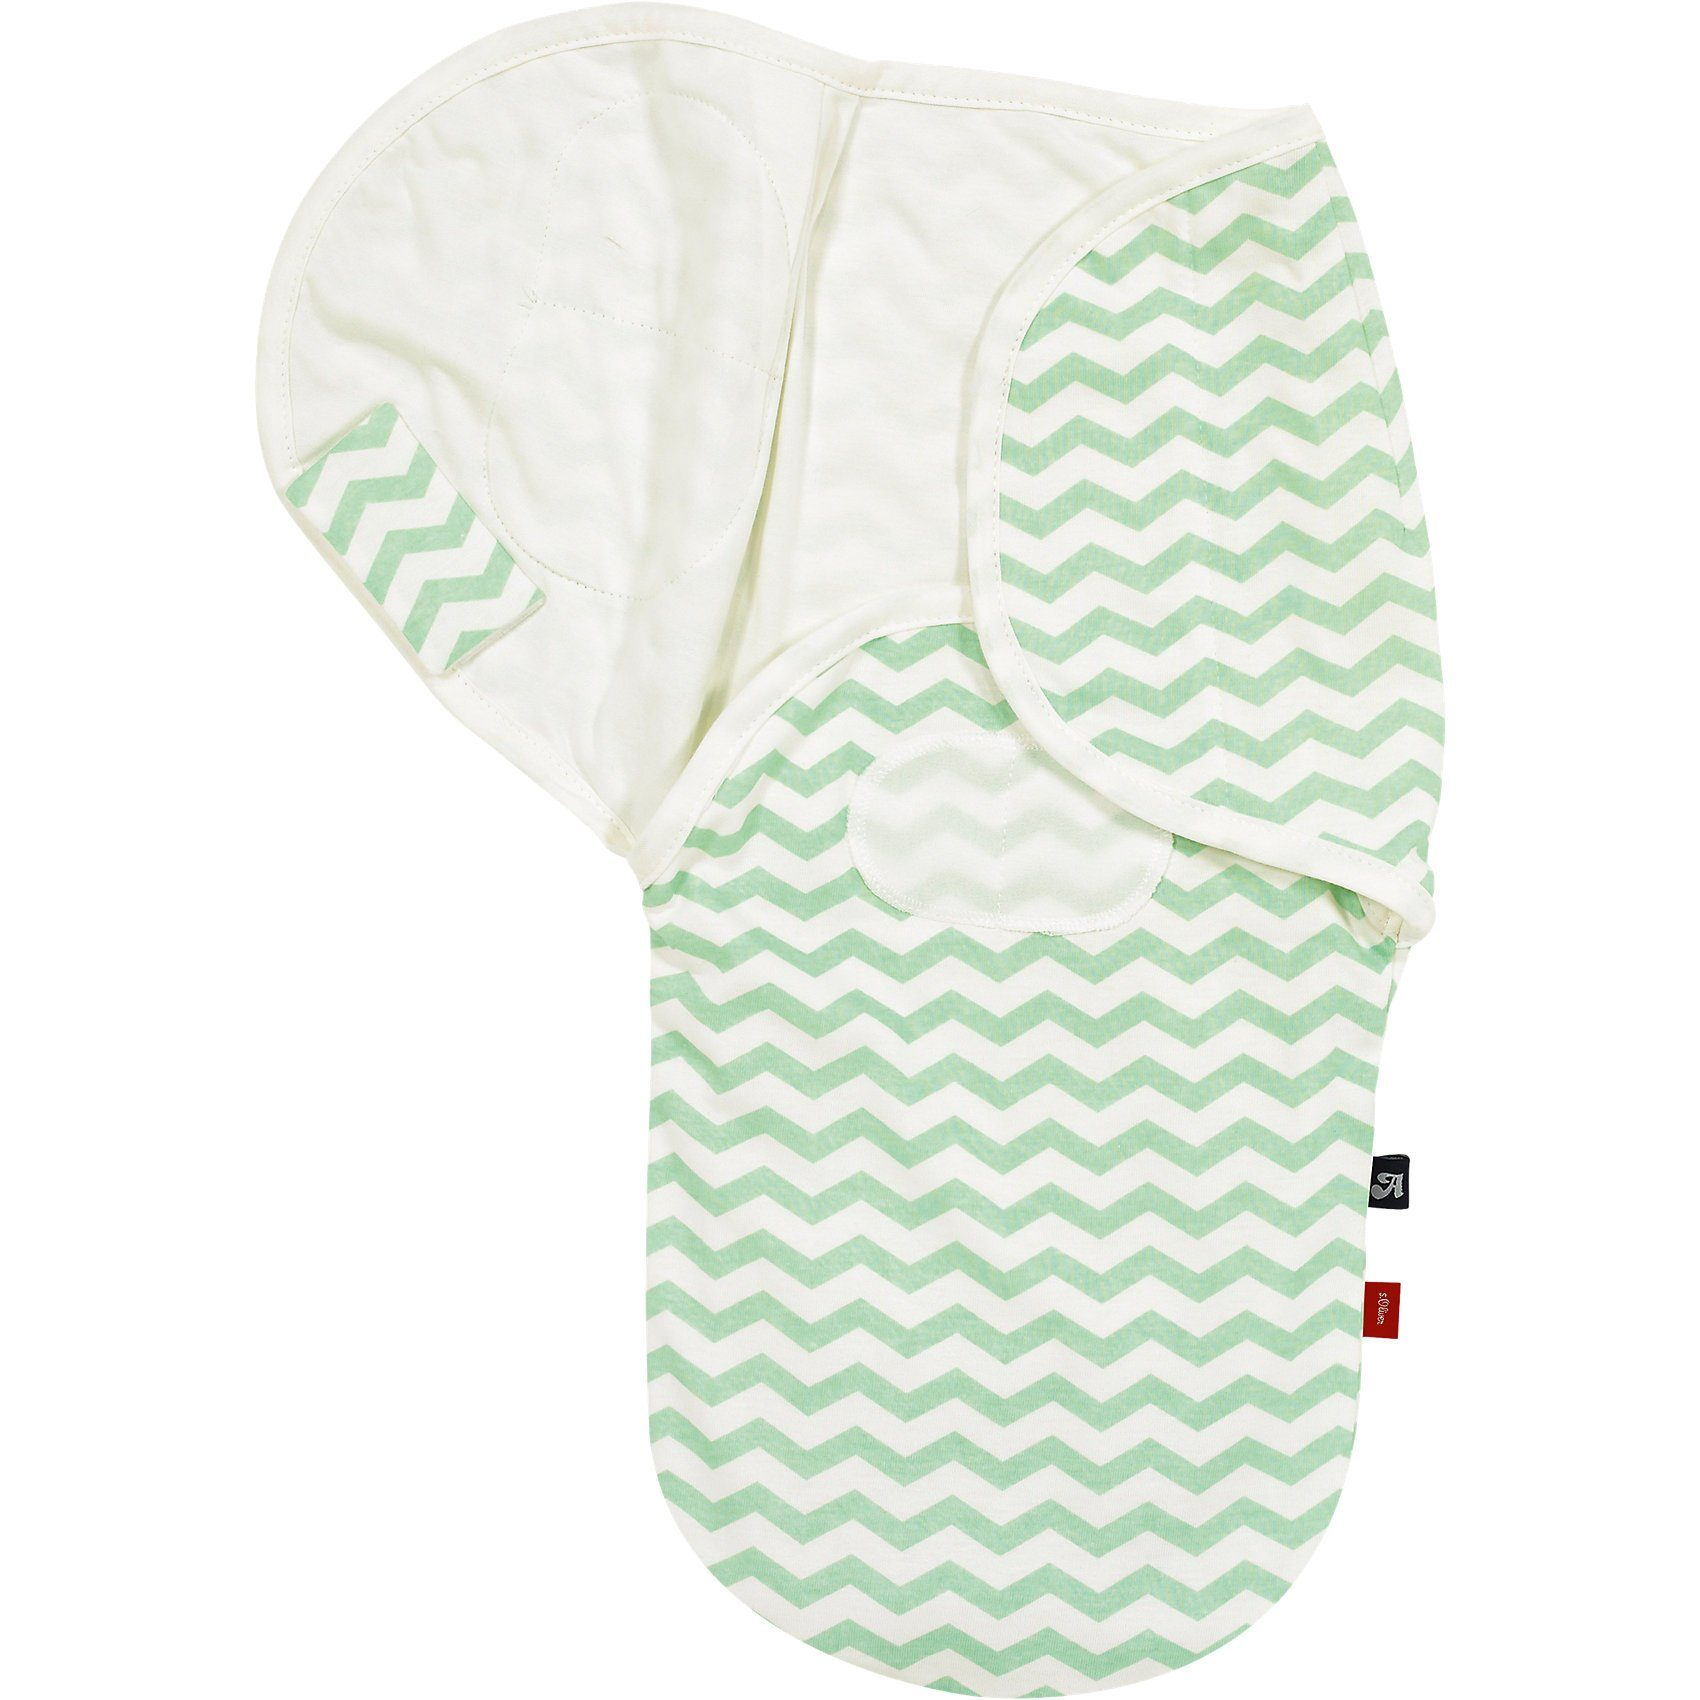 Alvi Wickeltuch s.Oliver Edition, Chevron mint